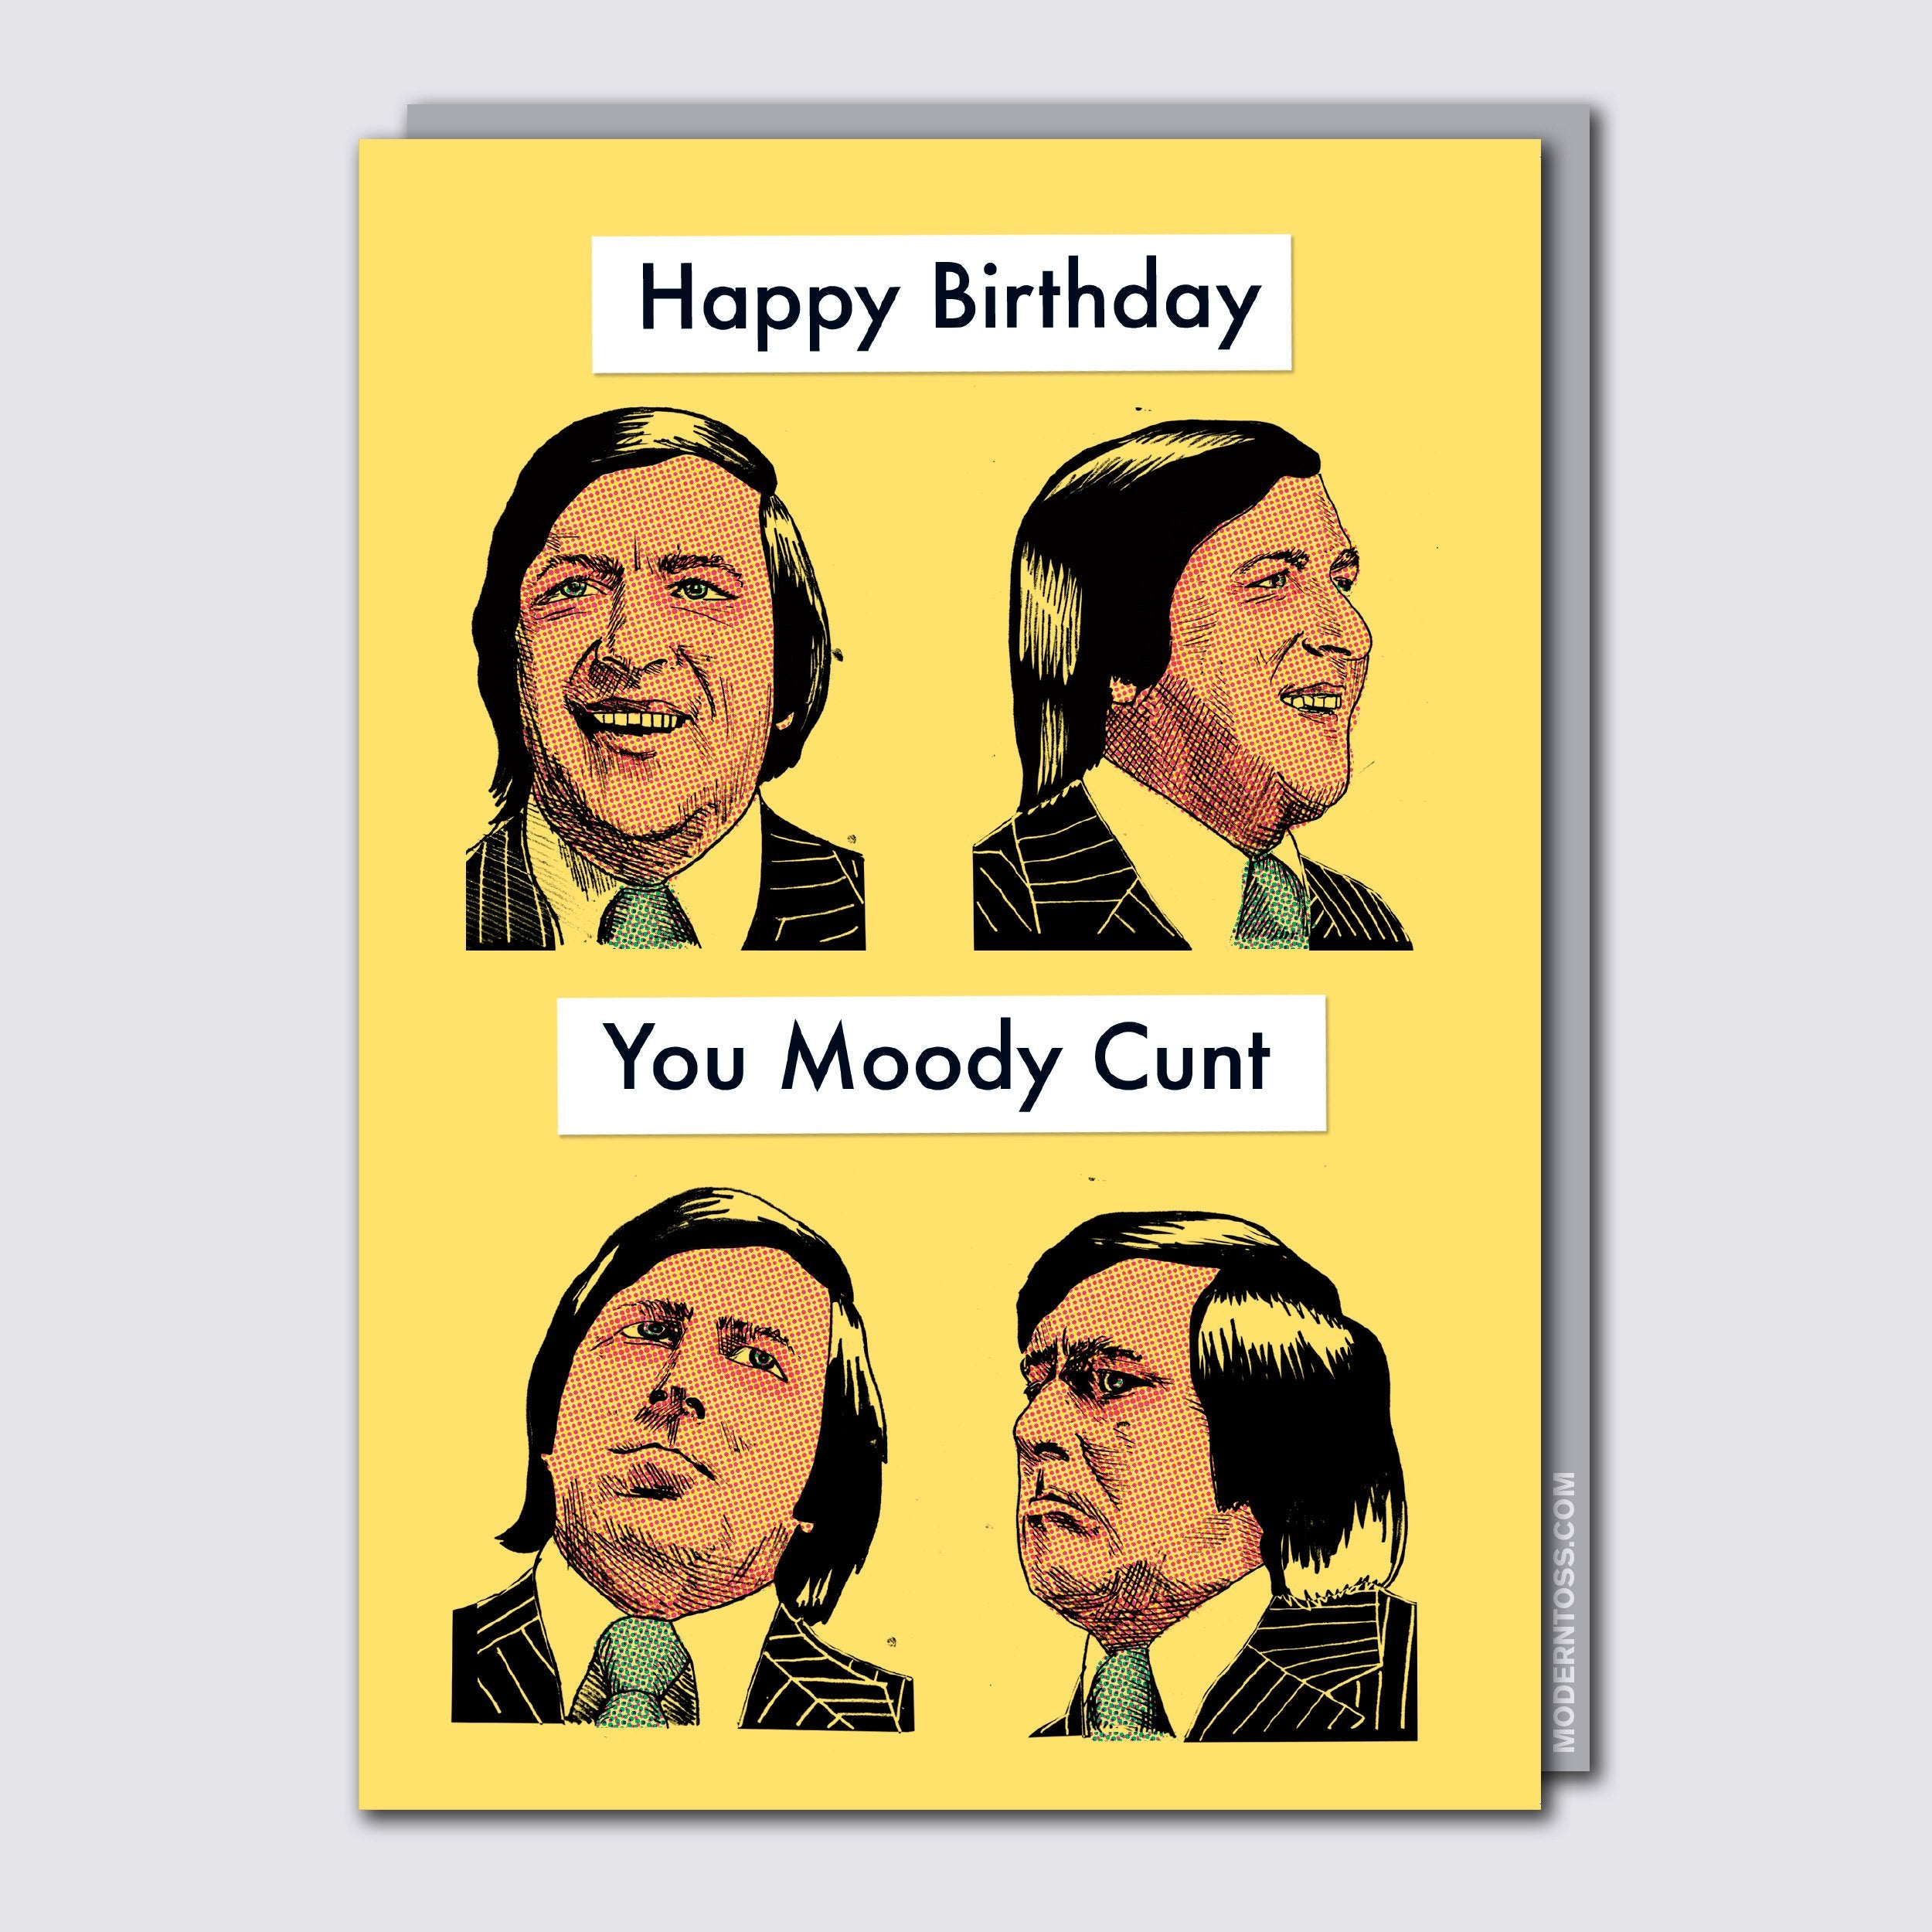 Moody Cunt Card